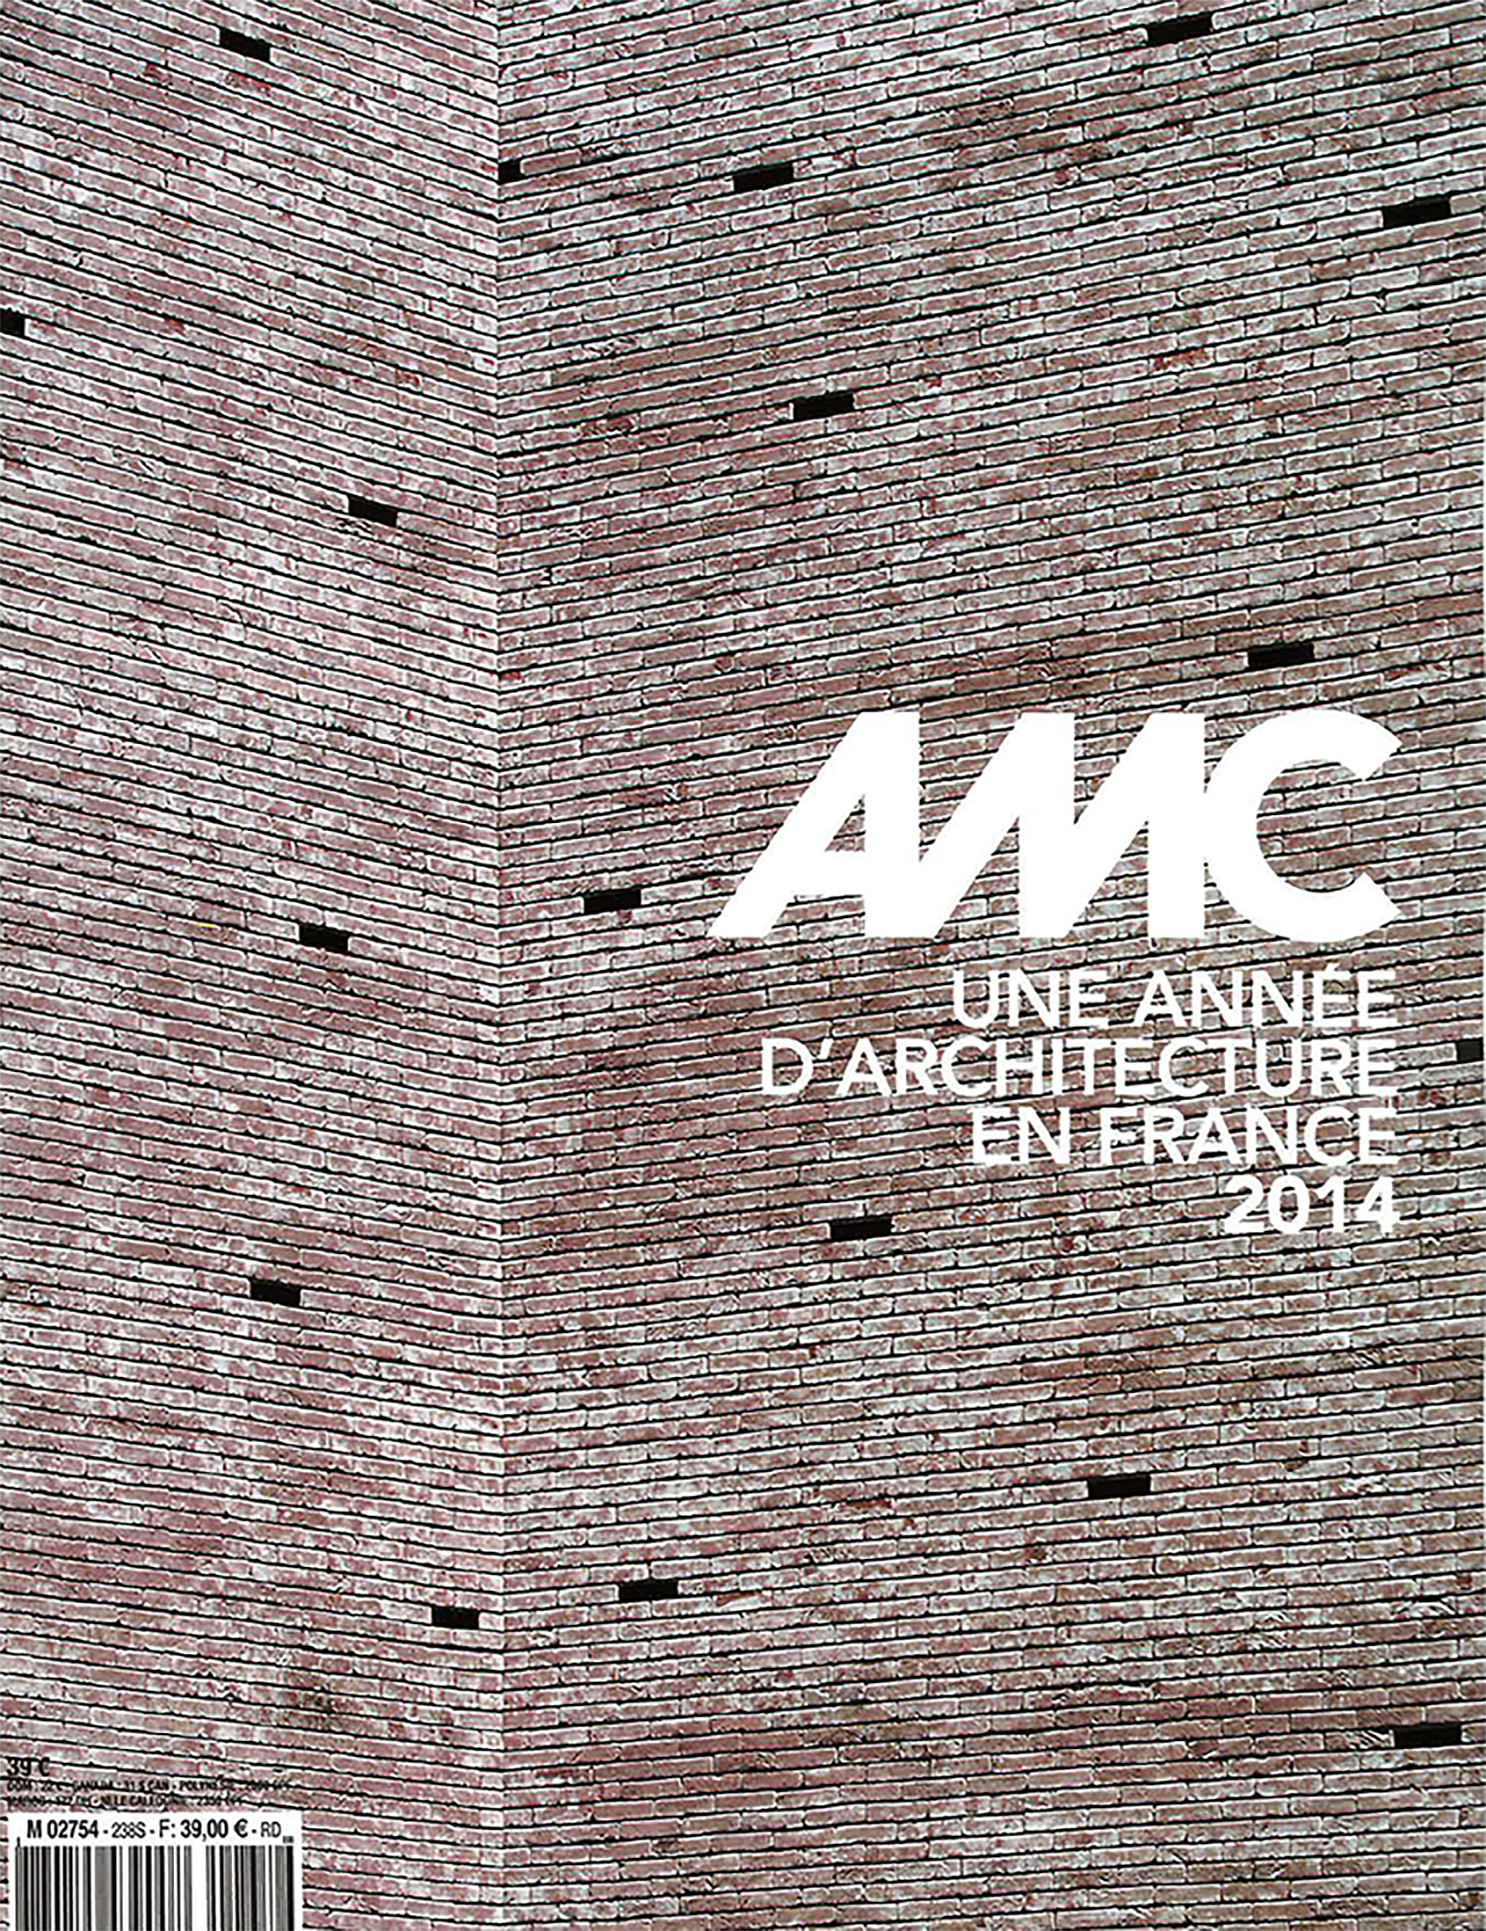 AMC-Une-annee-d'architecture-en-france-2014-Musee-de-la-Mer-light-1